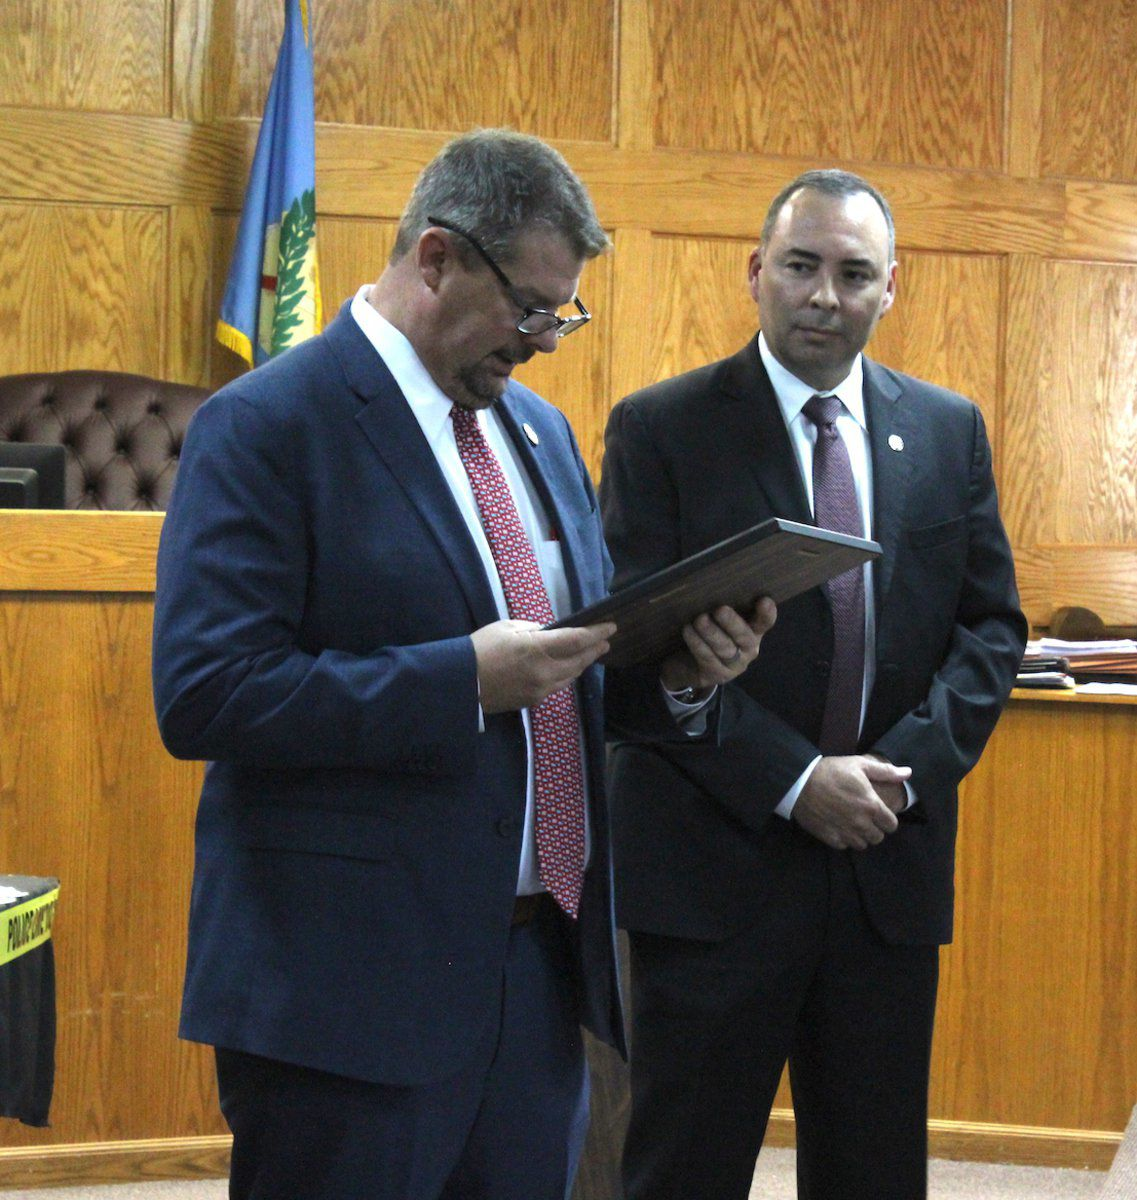 Area law officials honored by district attorney